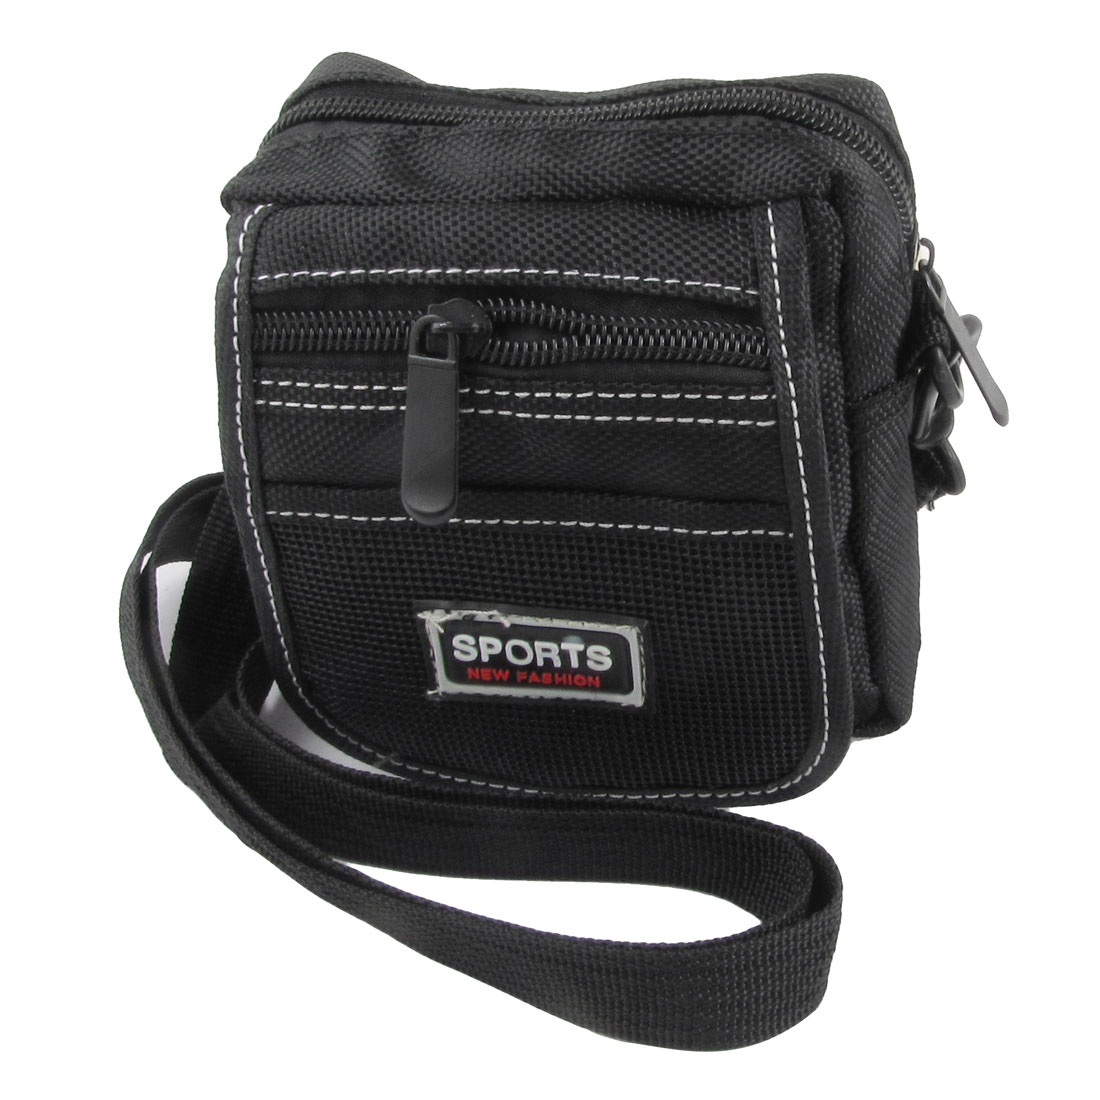 Man Black Nylon 3 Pockets Adjustable Strap Waist Bag Pouch